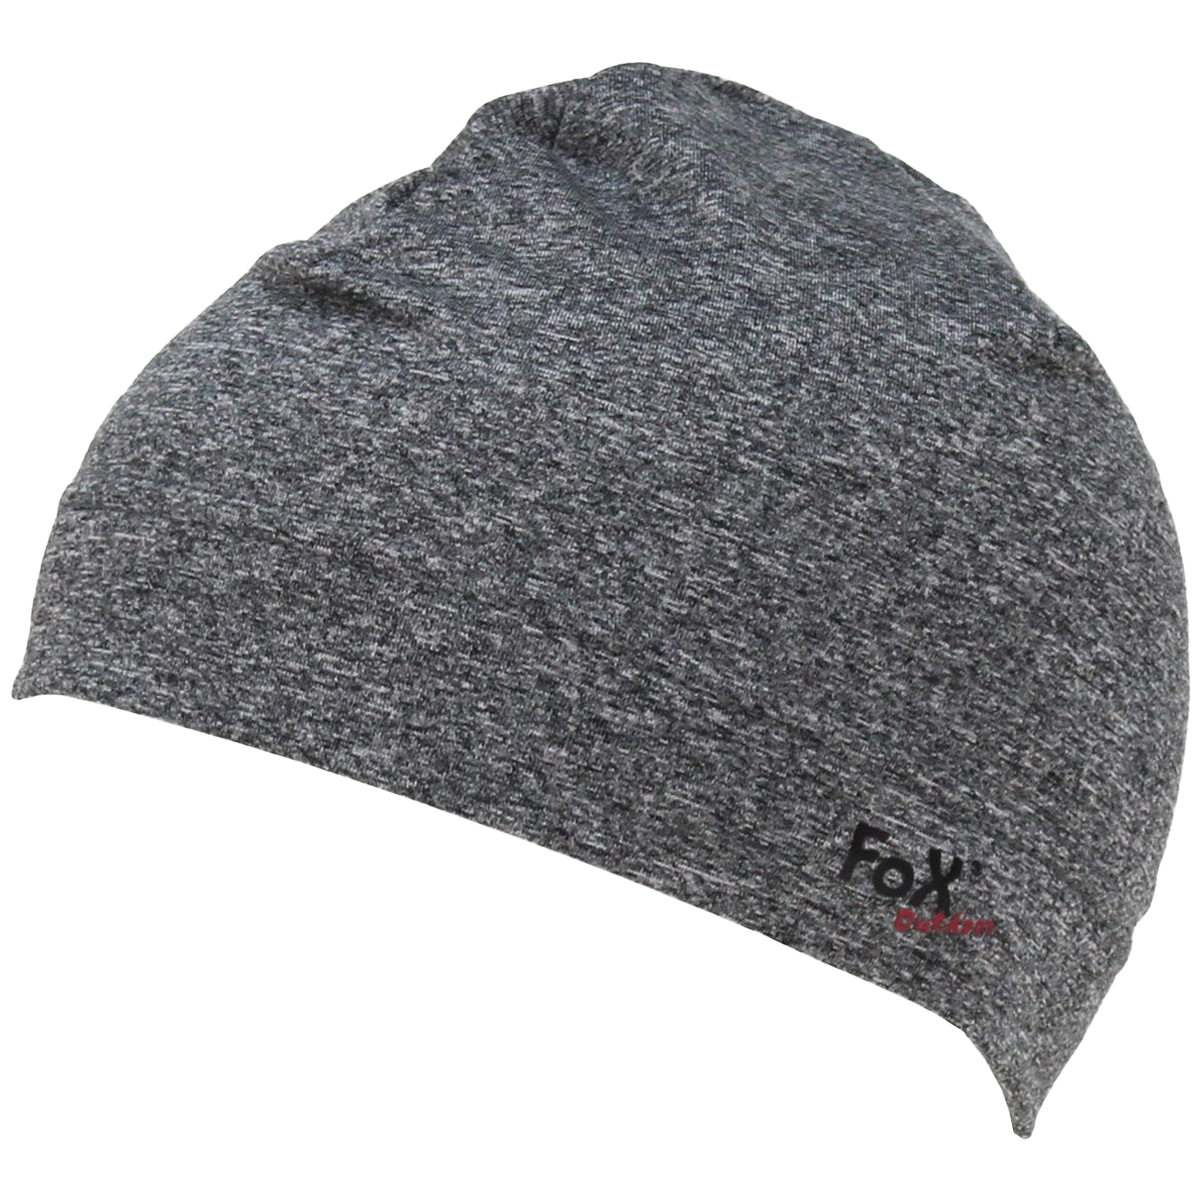 Details about Fox Outdoor Run Hat Mens Winter Running Police Hunting  Outdoor Soft Lining Grey 6eb09c90fb6